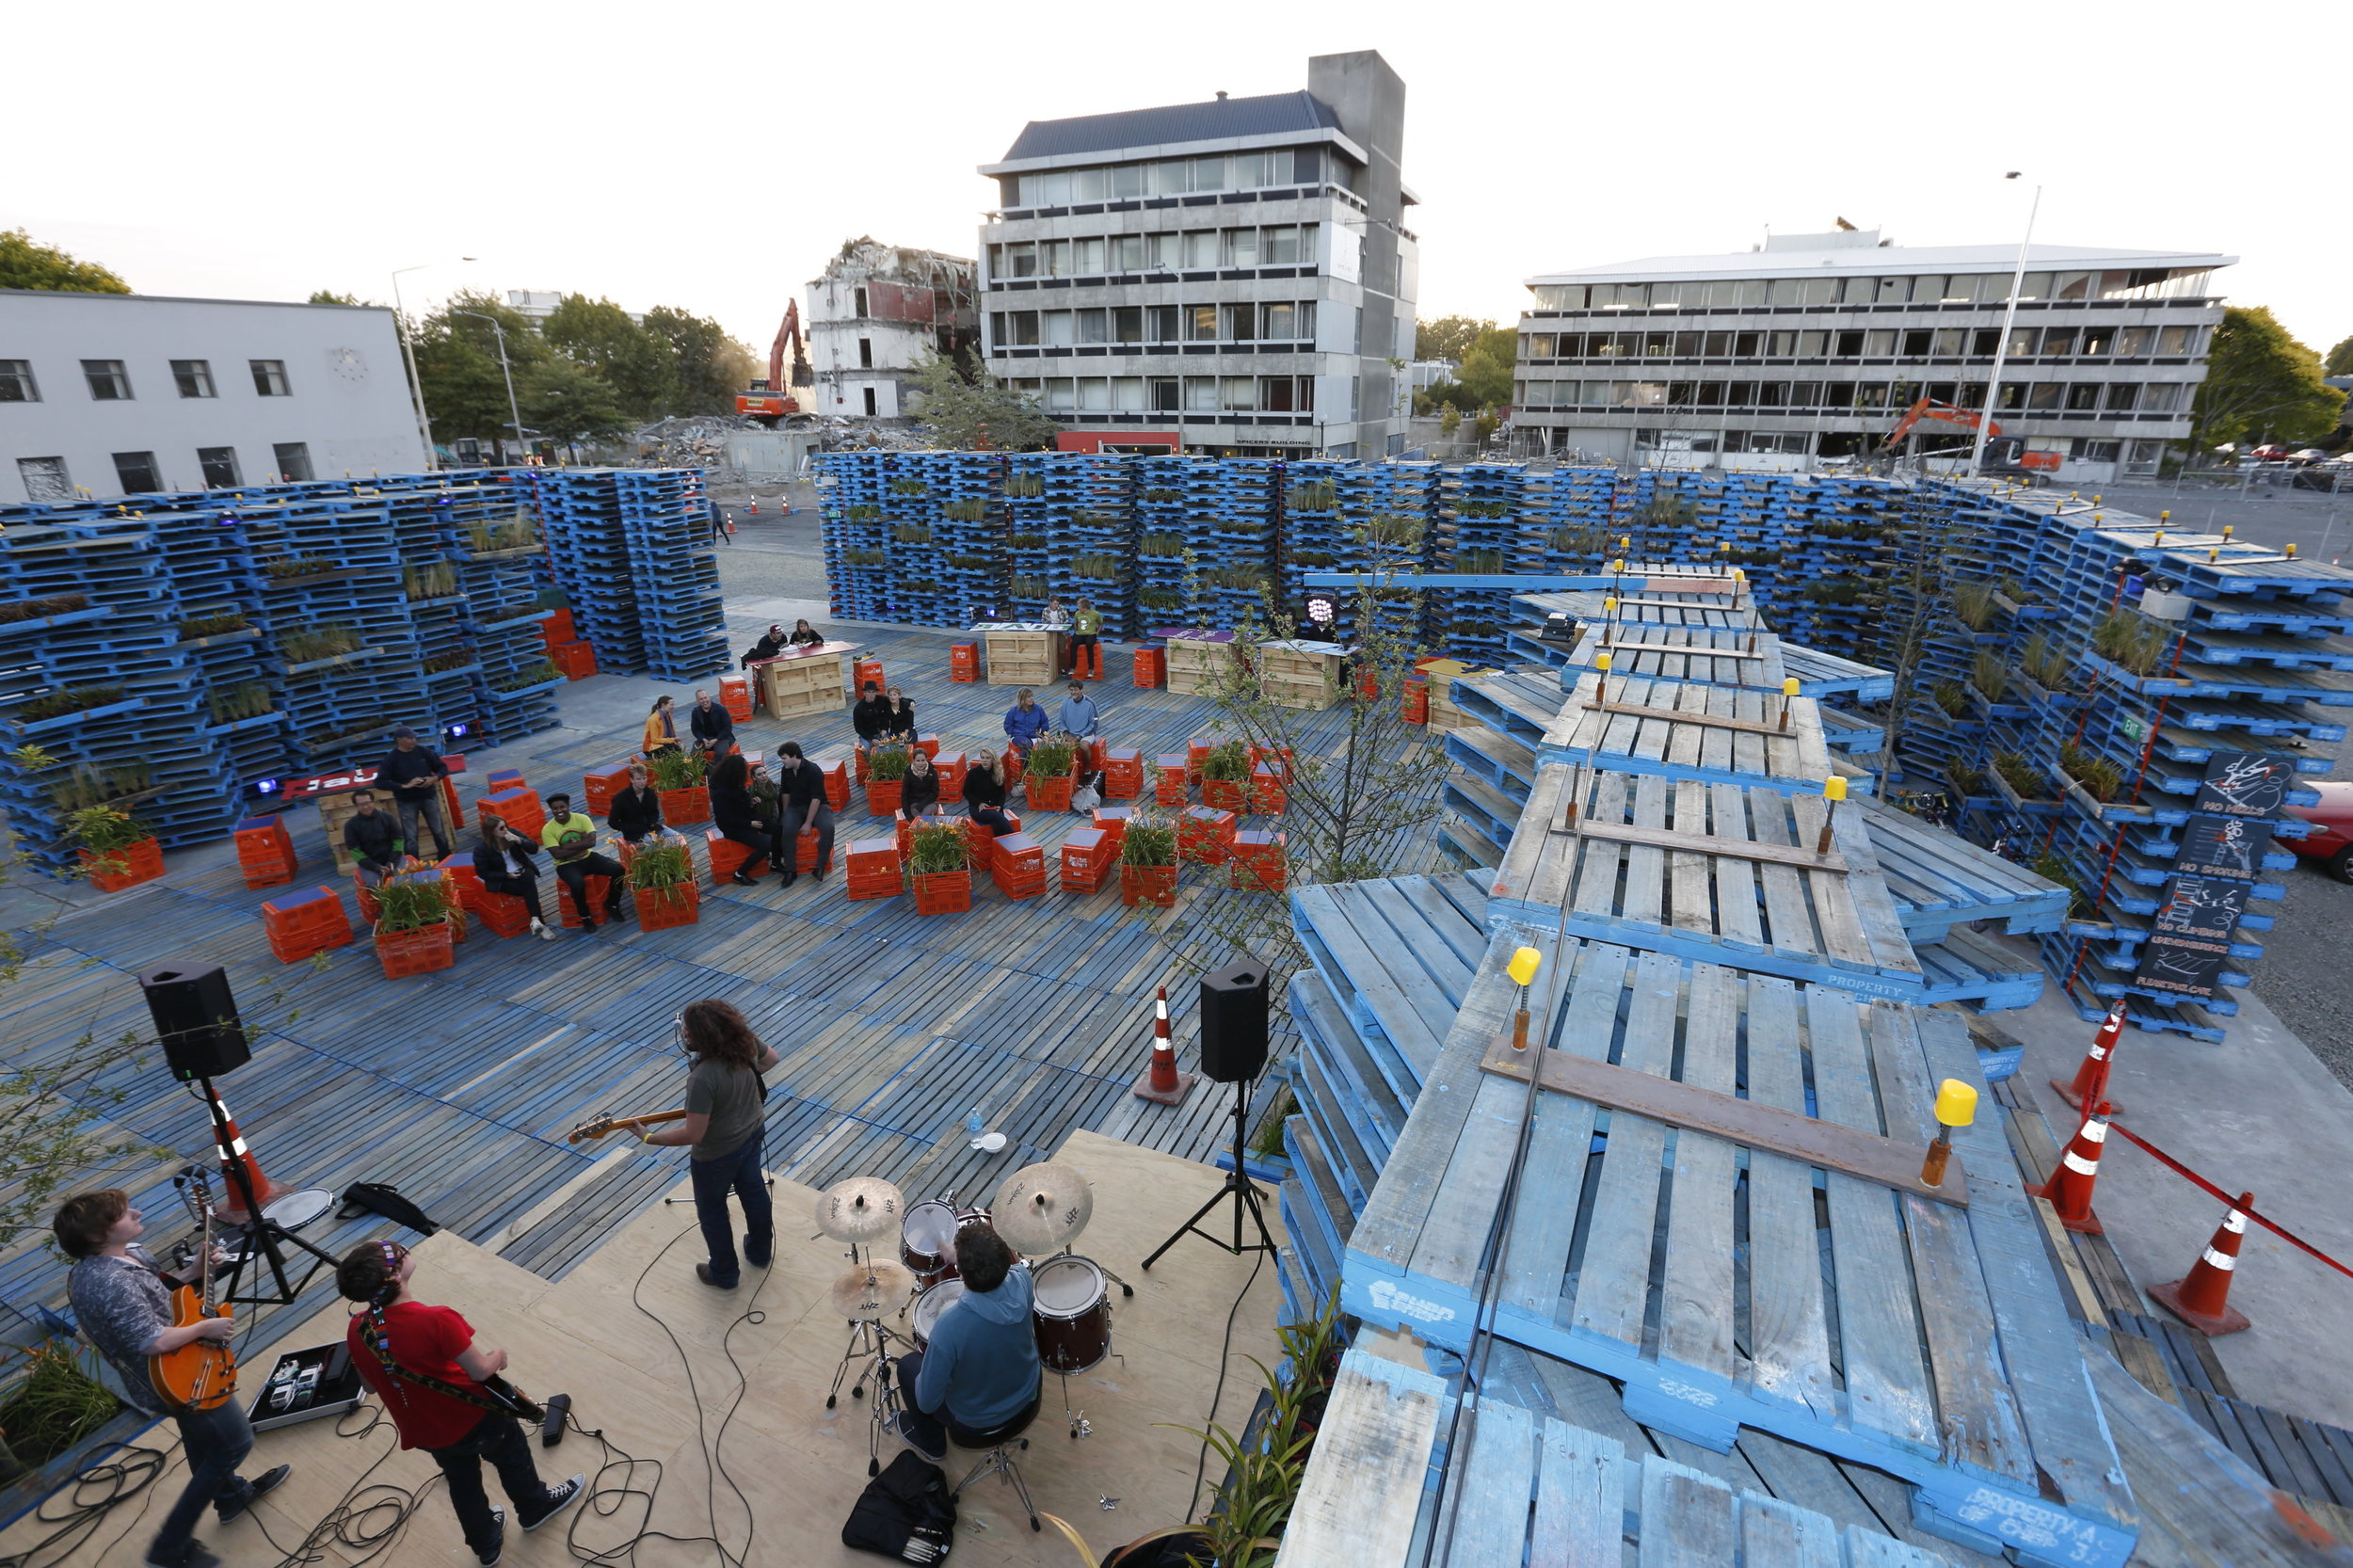 Gap Filler's The Pallet Pavilion, 2012-2014 (credit: Maja Moritz 2012)